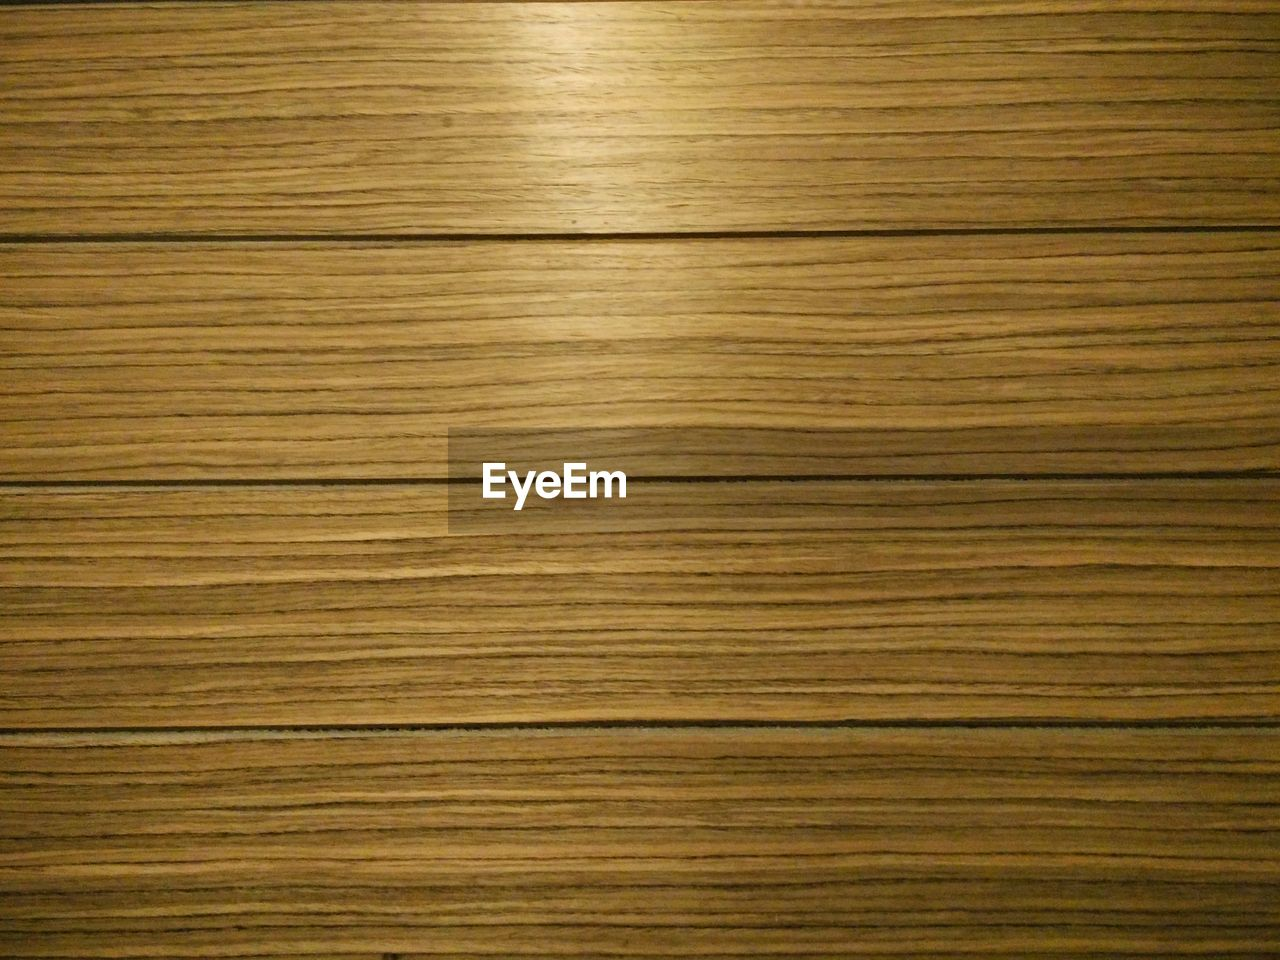 backgrounds, pattern, timber, rough, textured, striped, hardwood, wood - material, brown, nature, wood grain, wood paneling, smooth, close-up, blank, built structure, building exterior, no people, tree